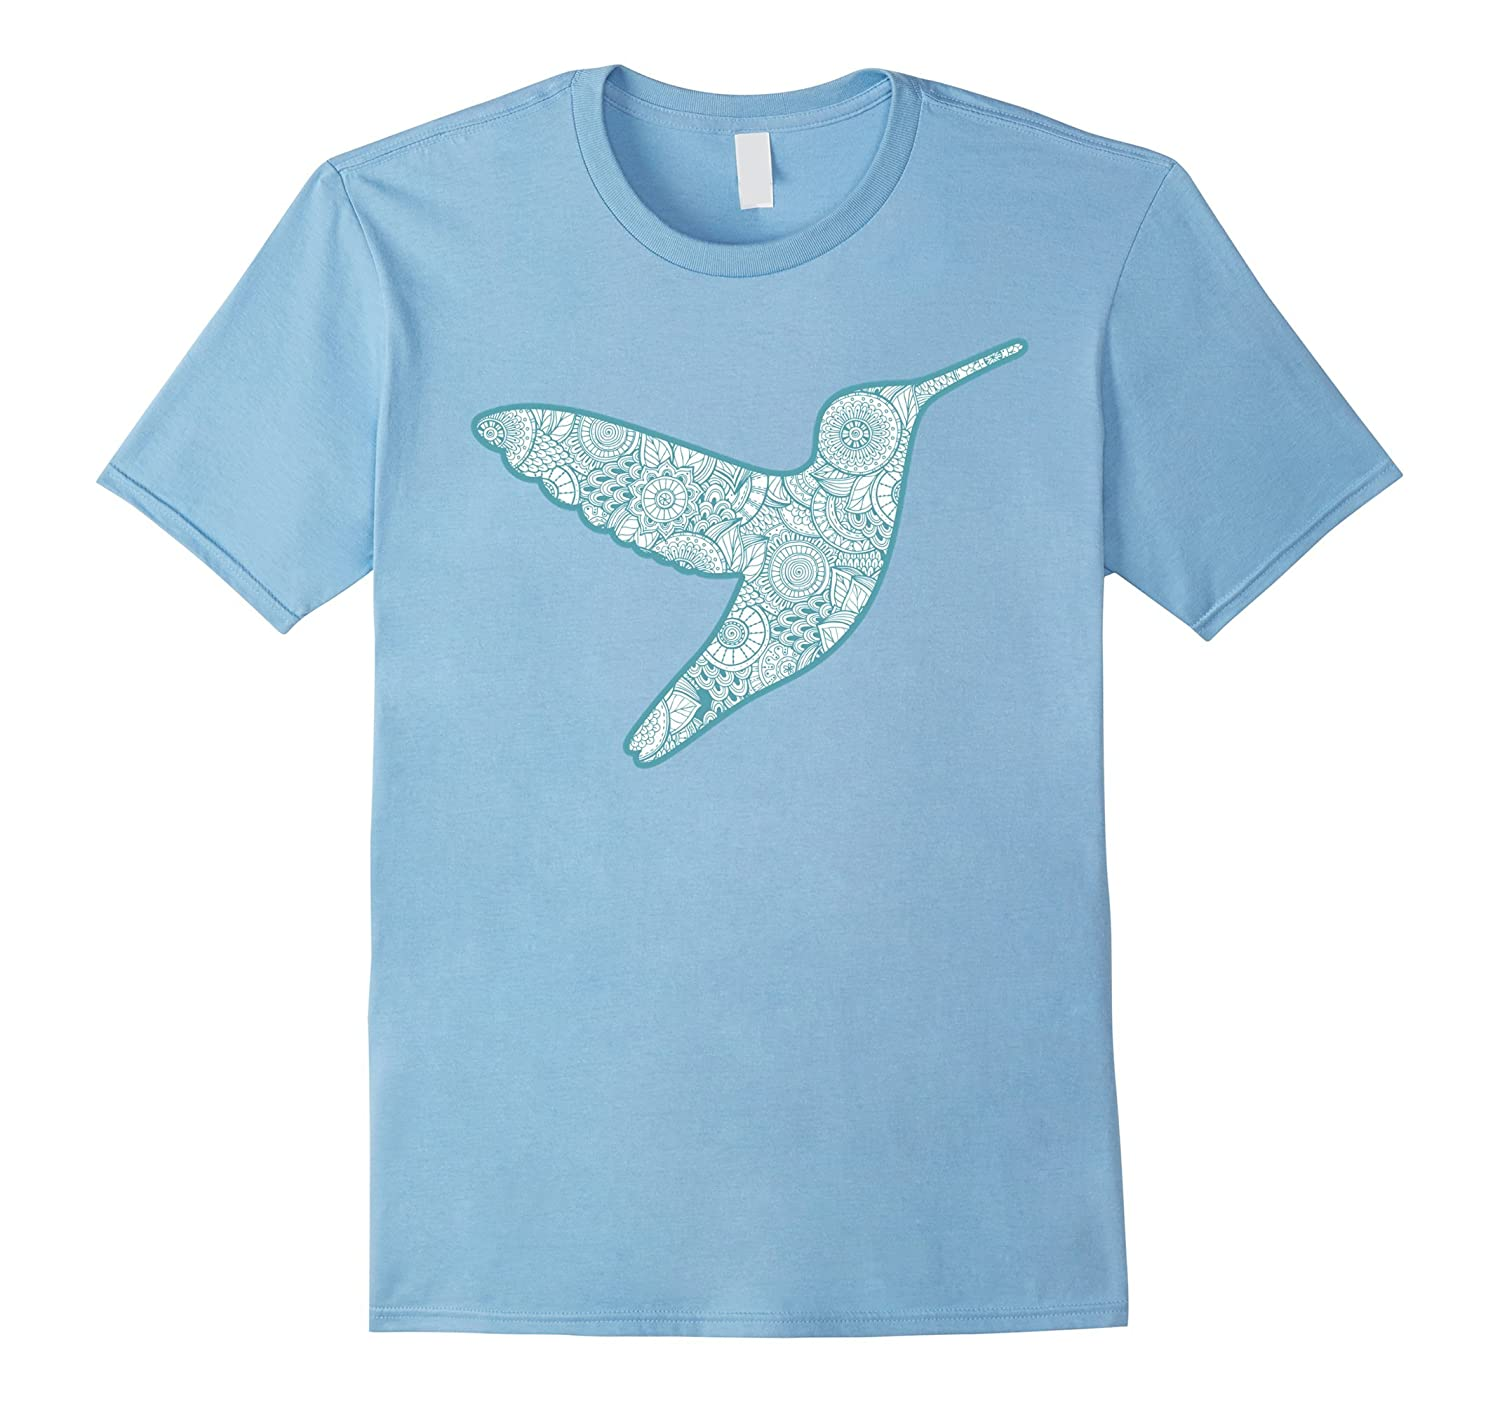 Hummingbird Silhouette T-Shirt With Paisley Pattern-Art